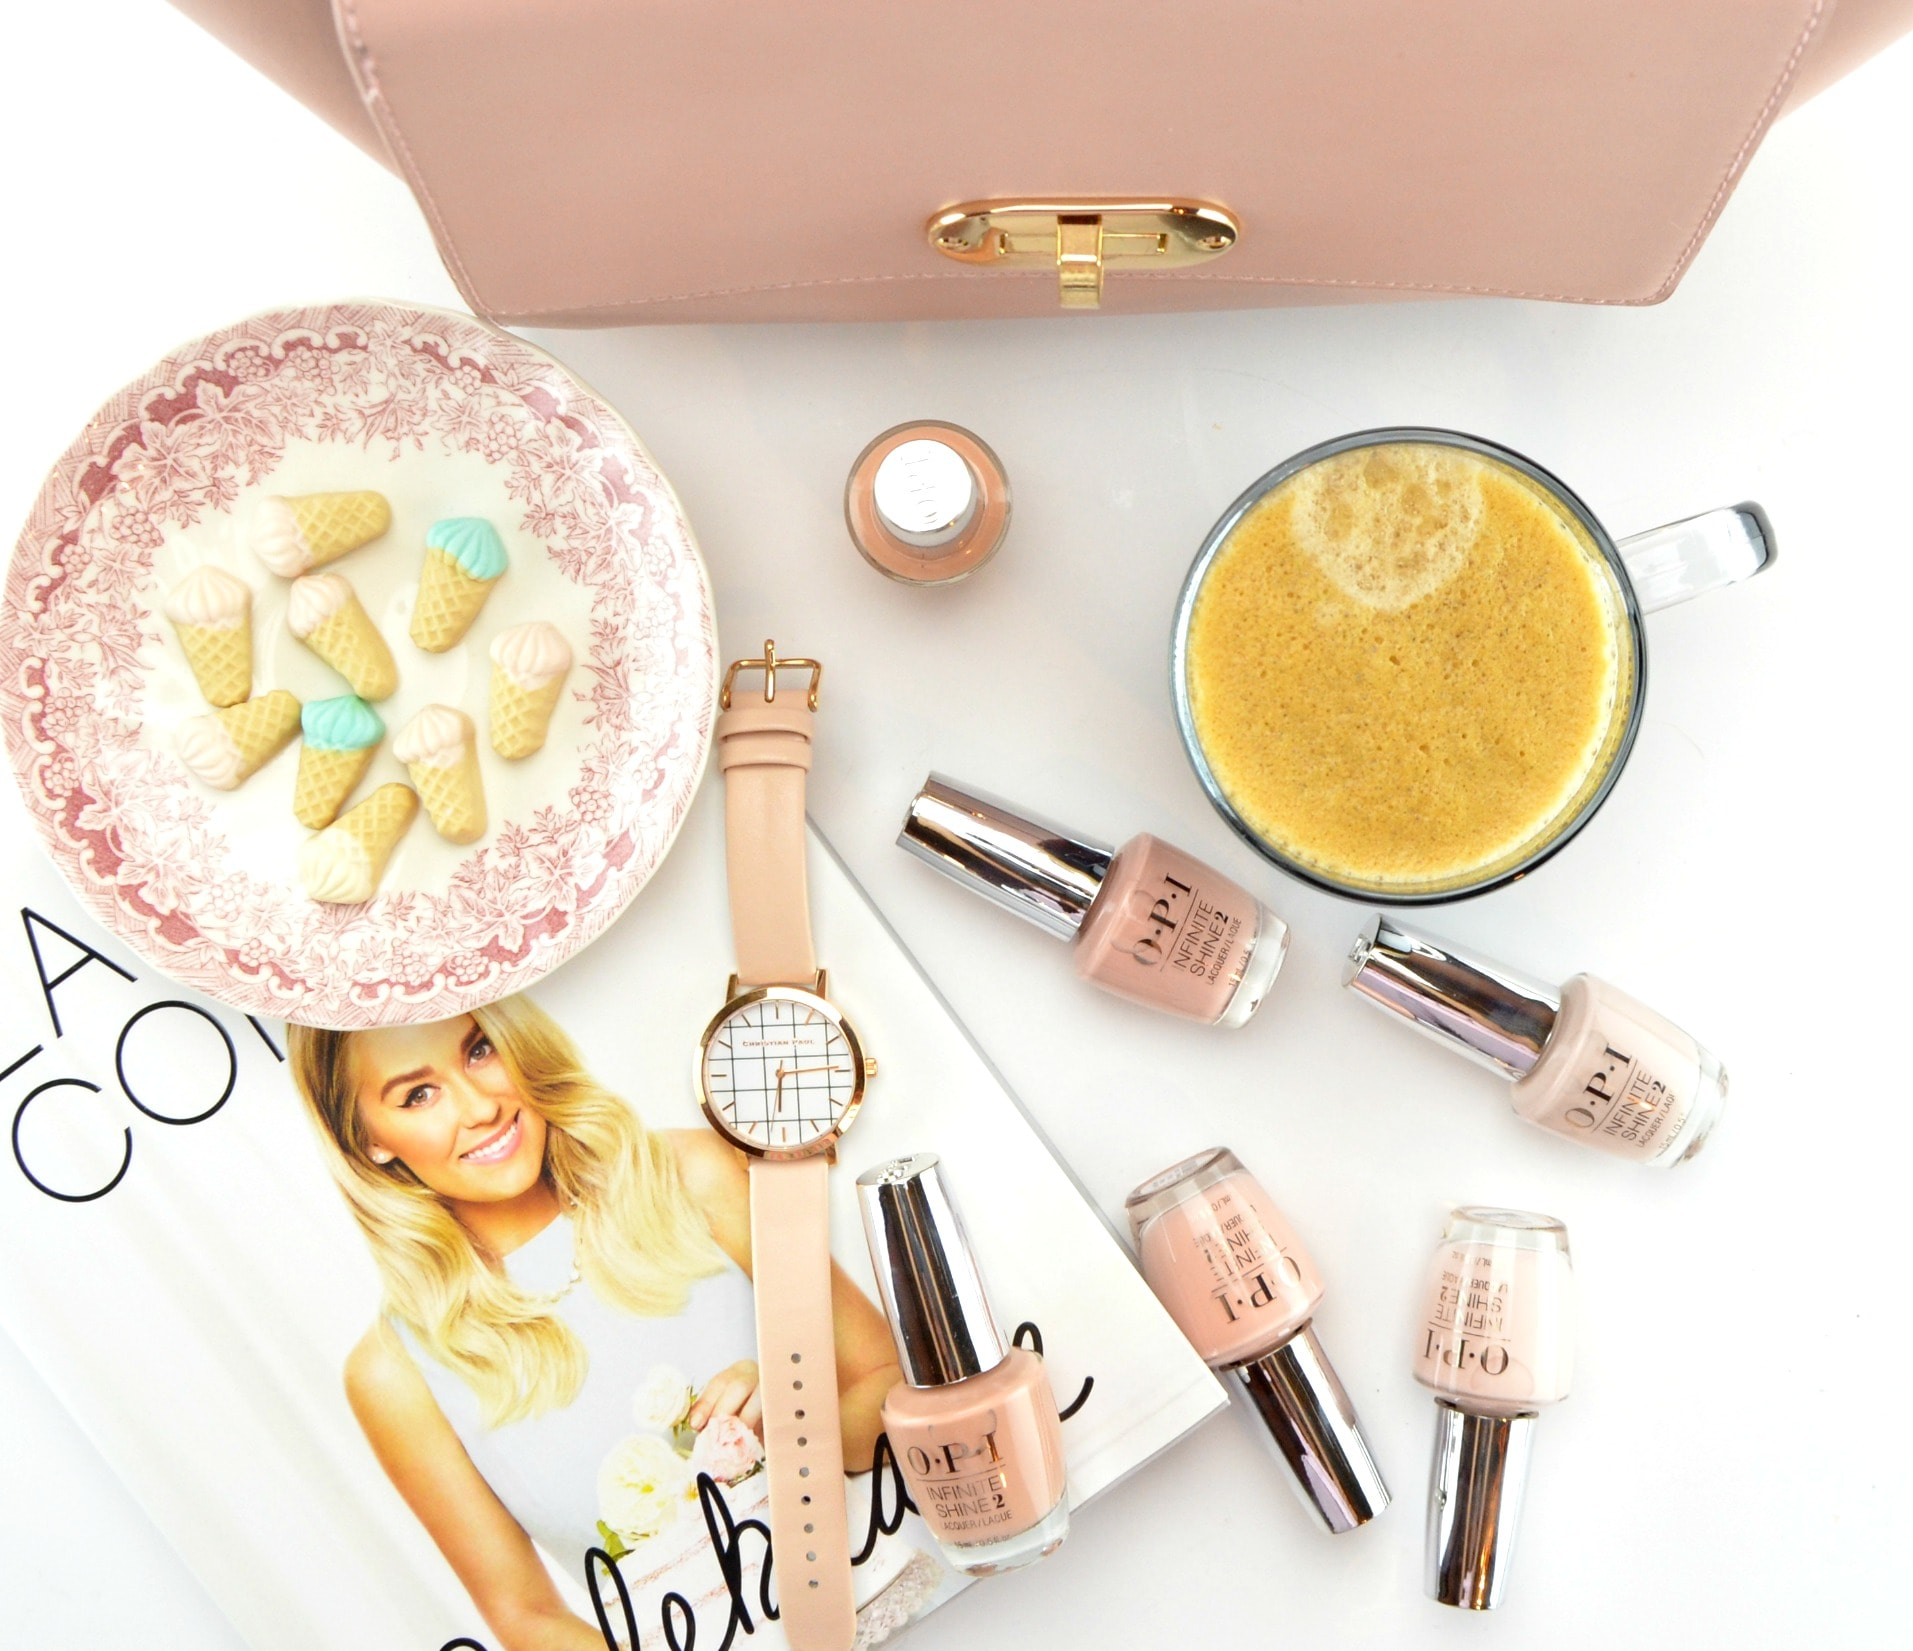 111856 likewise Courtney Love in addition Opi Infinite Shine Summer 2016 Collection also Watch besides Bangs Hairstyles. on oscar hair nail salon